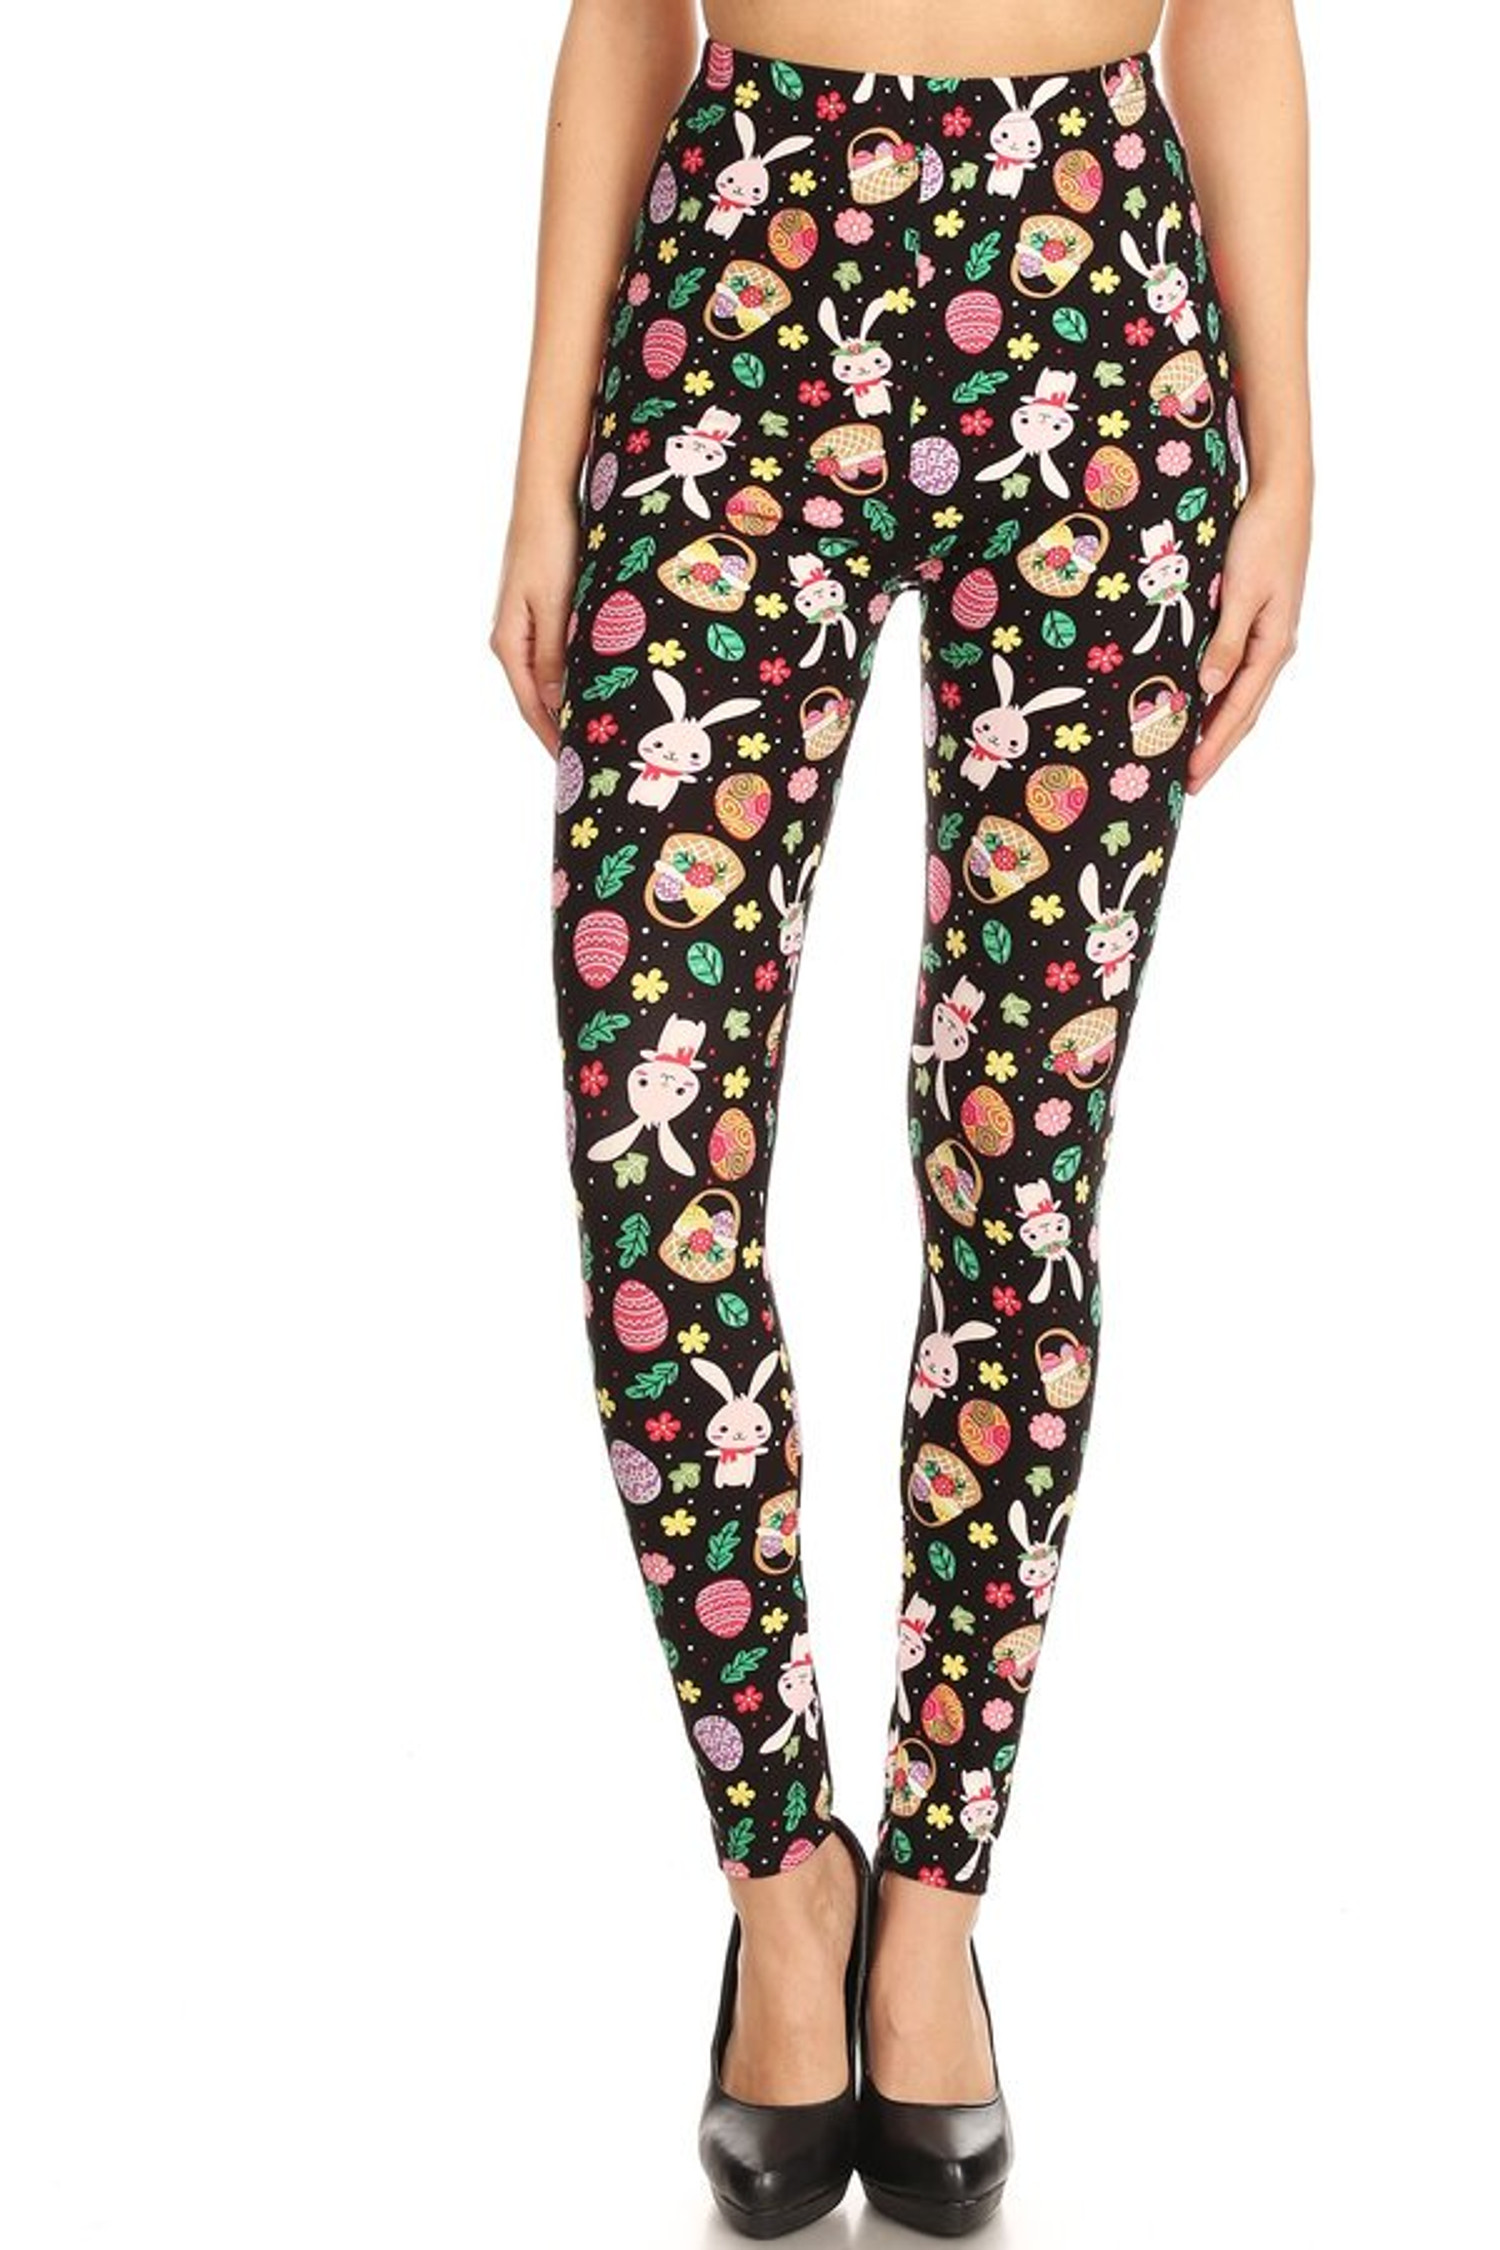 Brushed Happy Easter Plus Size Leggings - 3X-5X